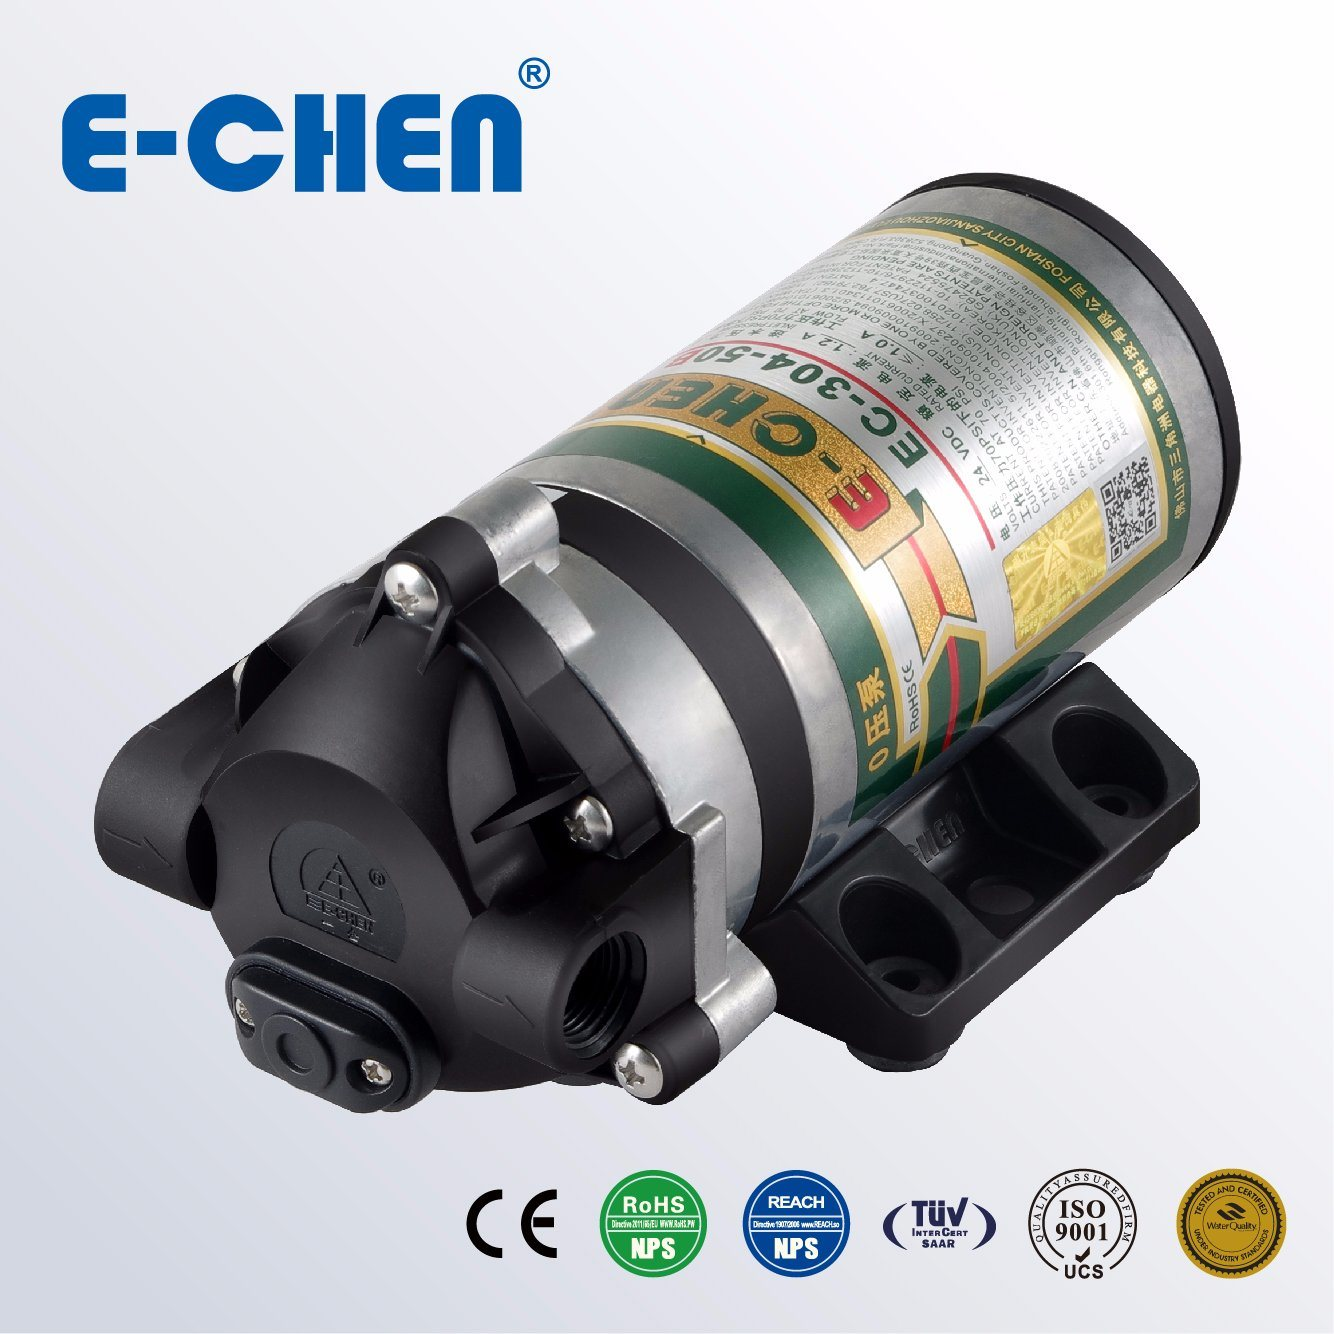 E-Chen 304 Series 75gpd Diaphragm RO Booster Pump - Designed for 0 Inlet Pressure Water Pump